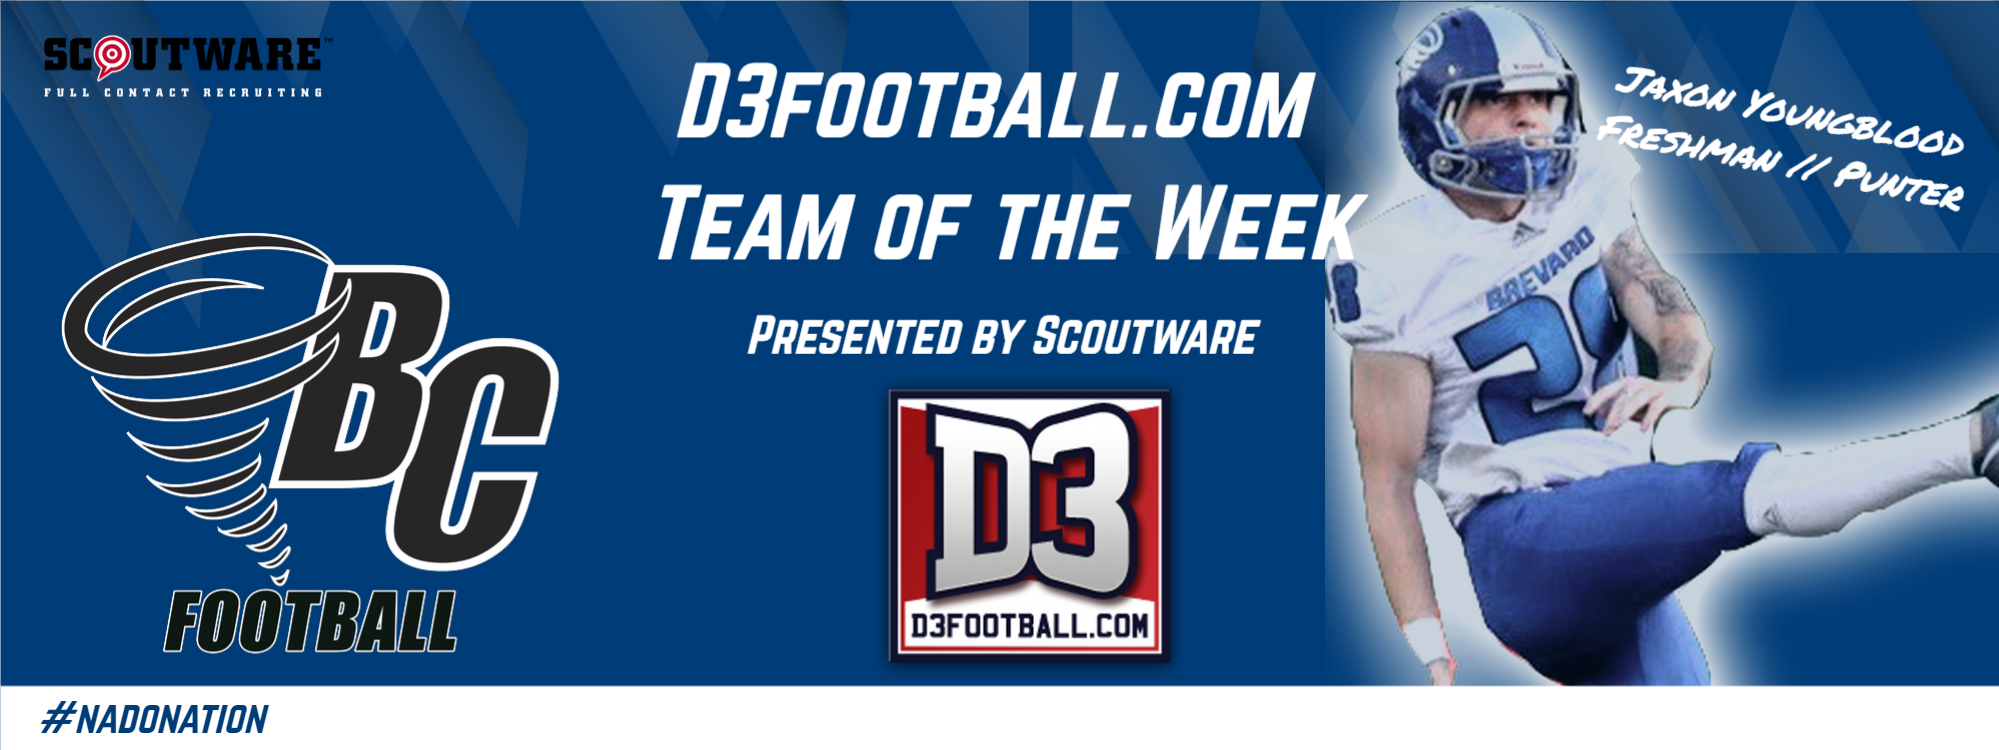 Brevard's Jaxon Youngblood Selected to D3football.com Team of the Week